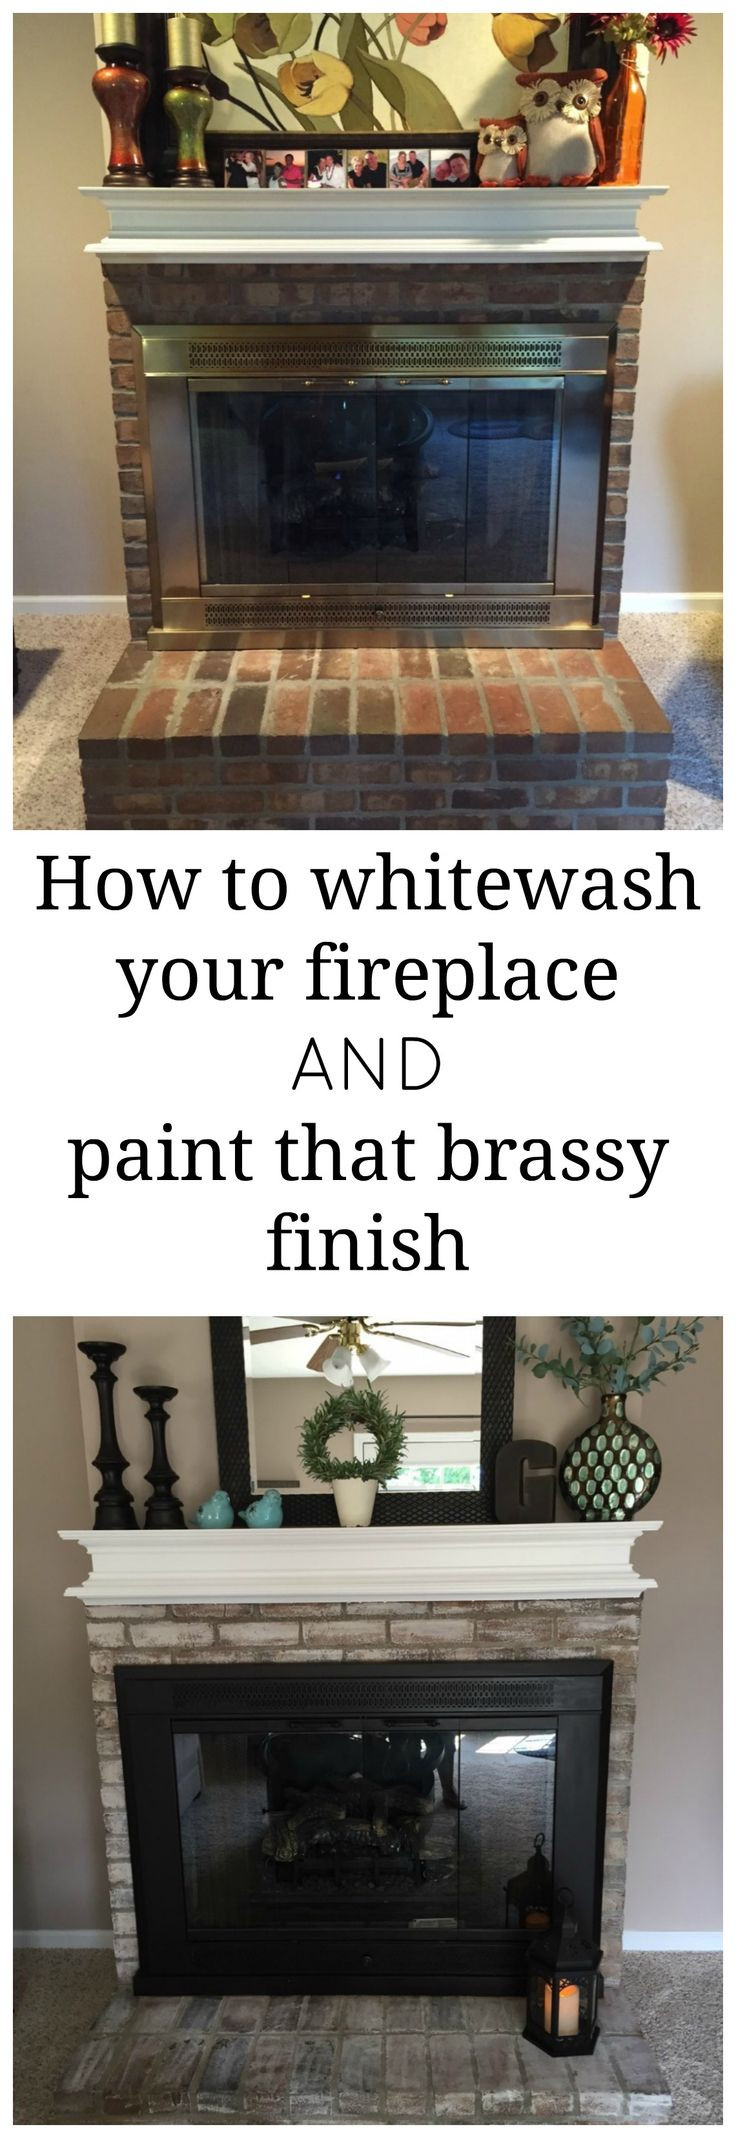 hardwood floor refinishing whitby of 422 best redecorate images on pinterest for the home bathroom and regarding how to whitewash a fireplace and how to paint over that brassy outdated finish